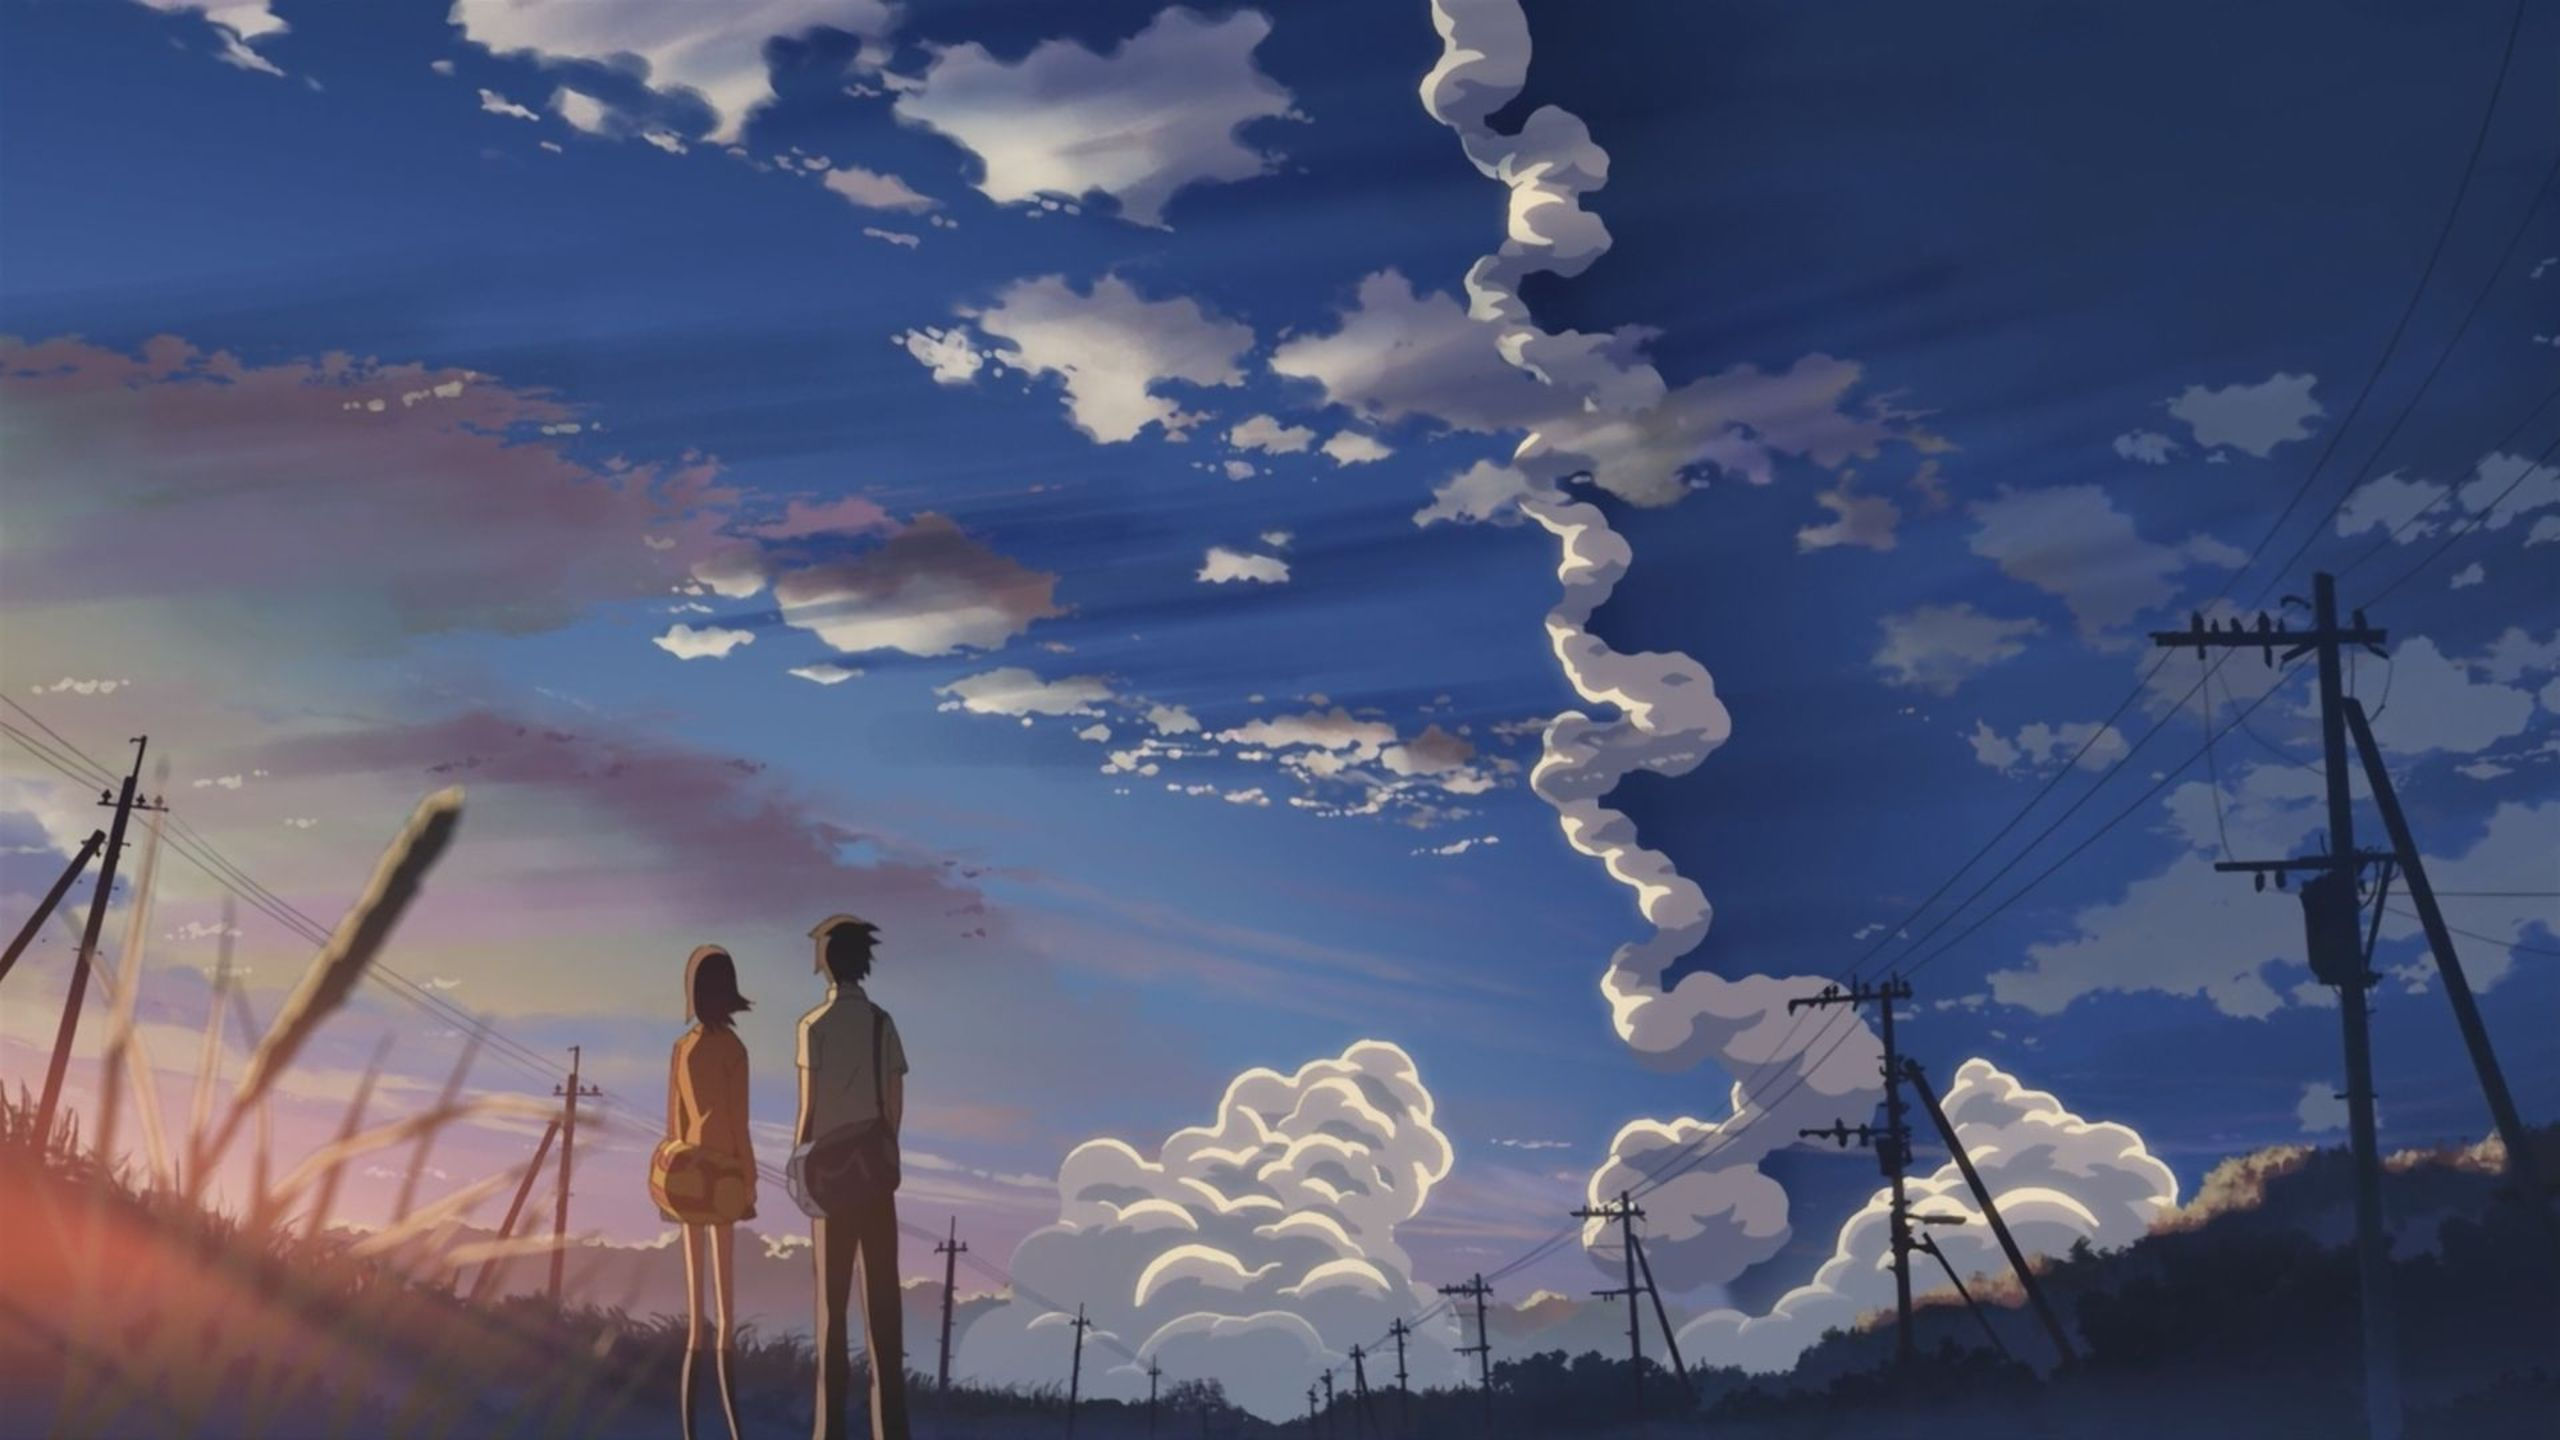 5 Centimeters Per Second Wallpaper Chill Mix World Movies Anime